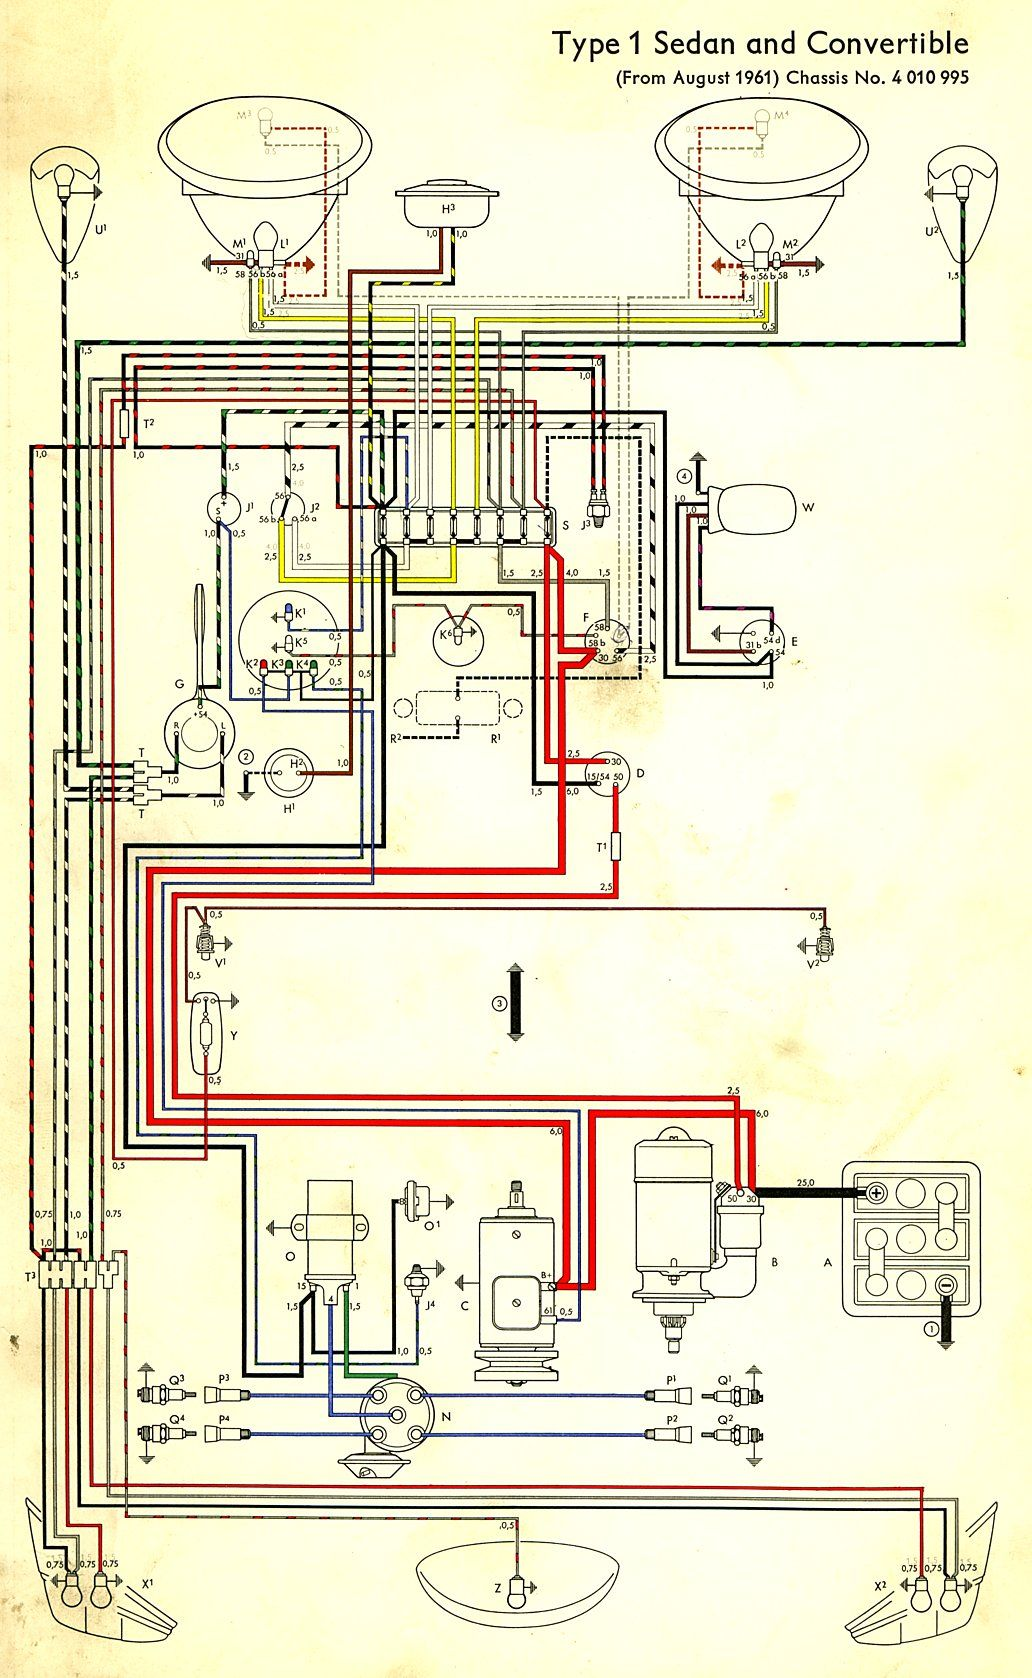 64 volkswagen bug wiring diagram for a 64 vw bug wiring diagram